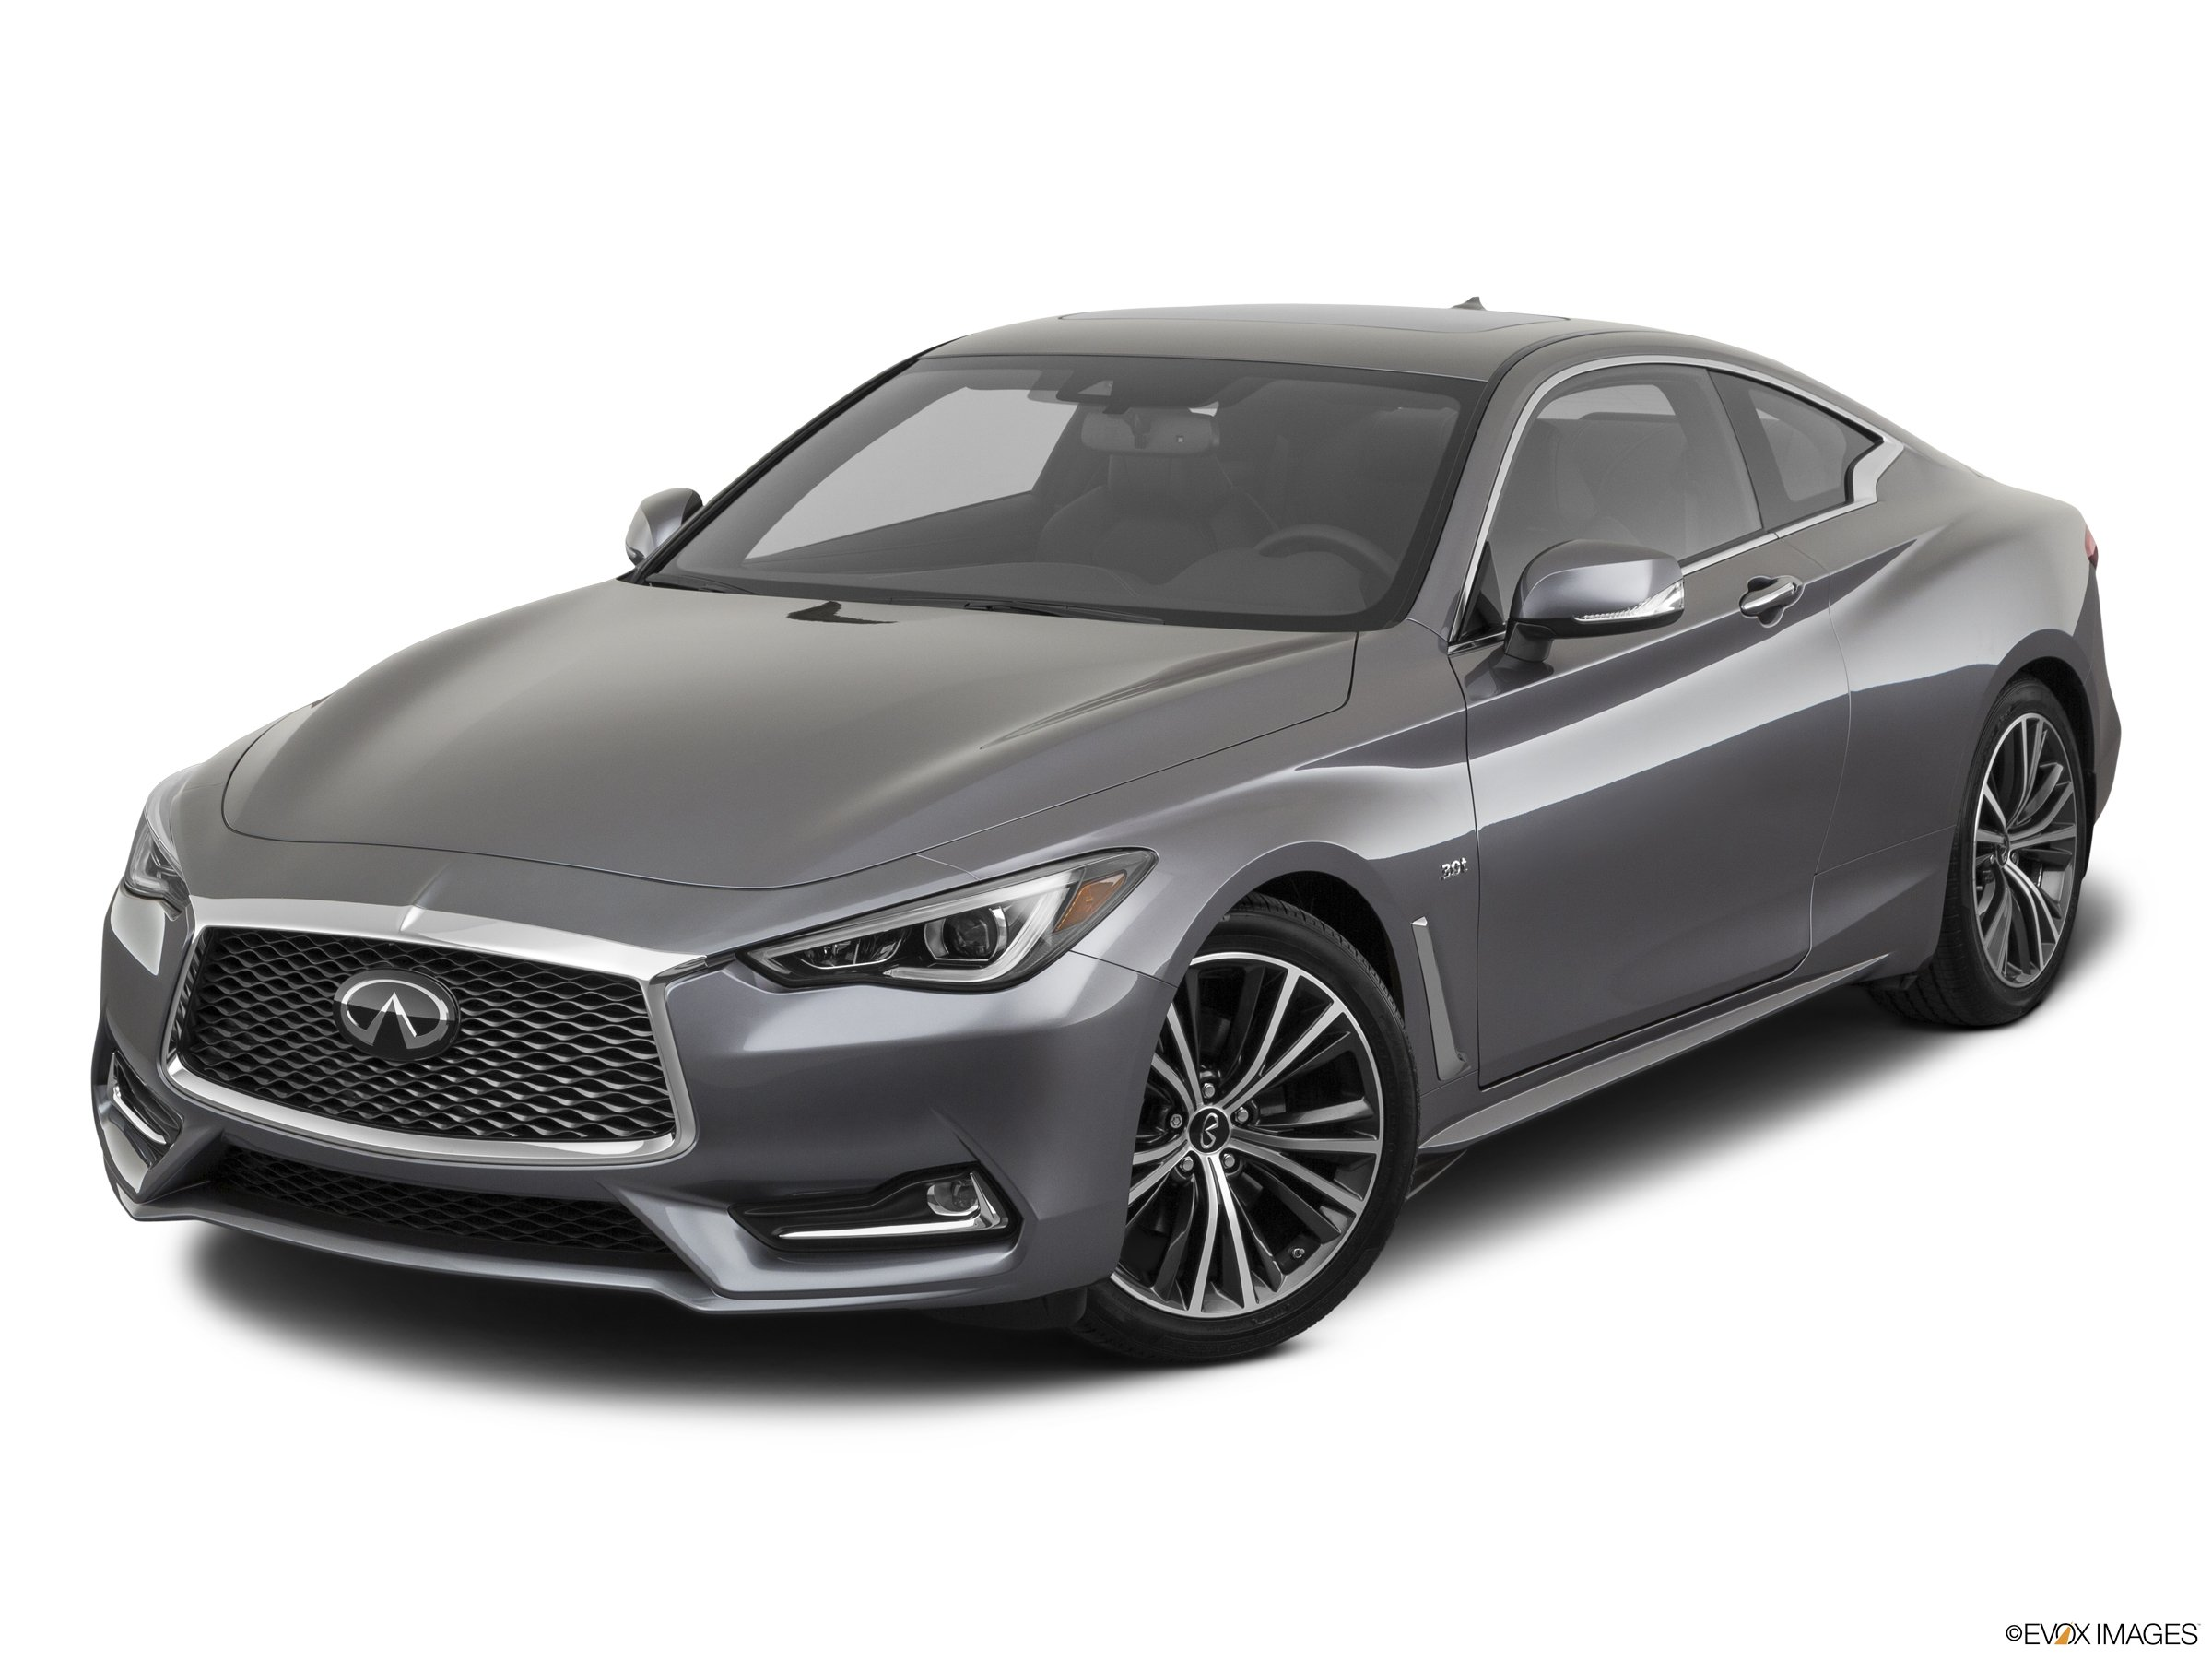 2020 Infiniti Q60 3.0t LUXE RWD coupe